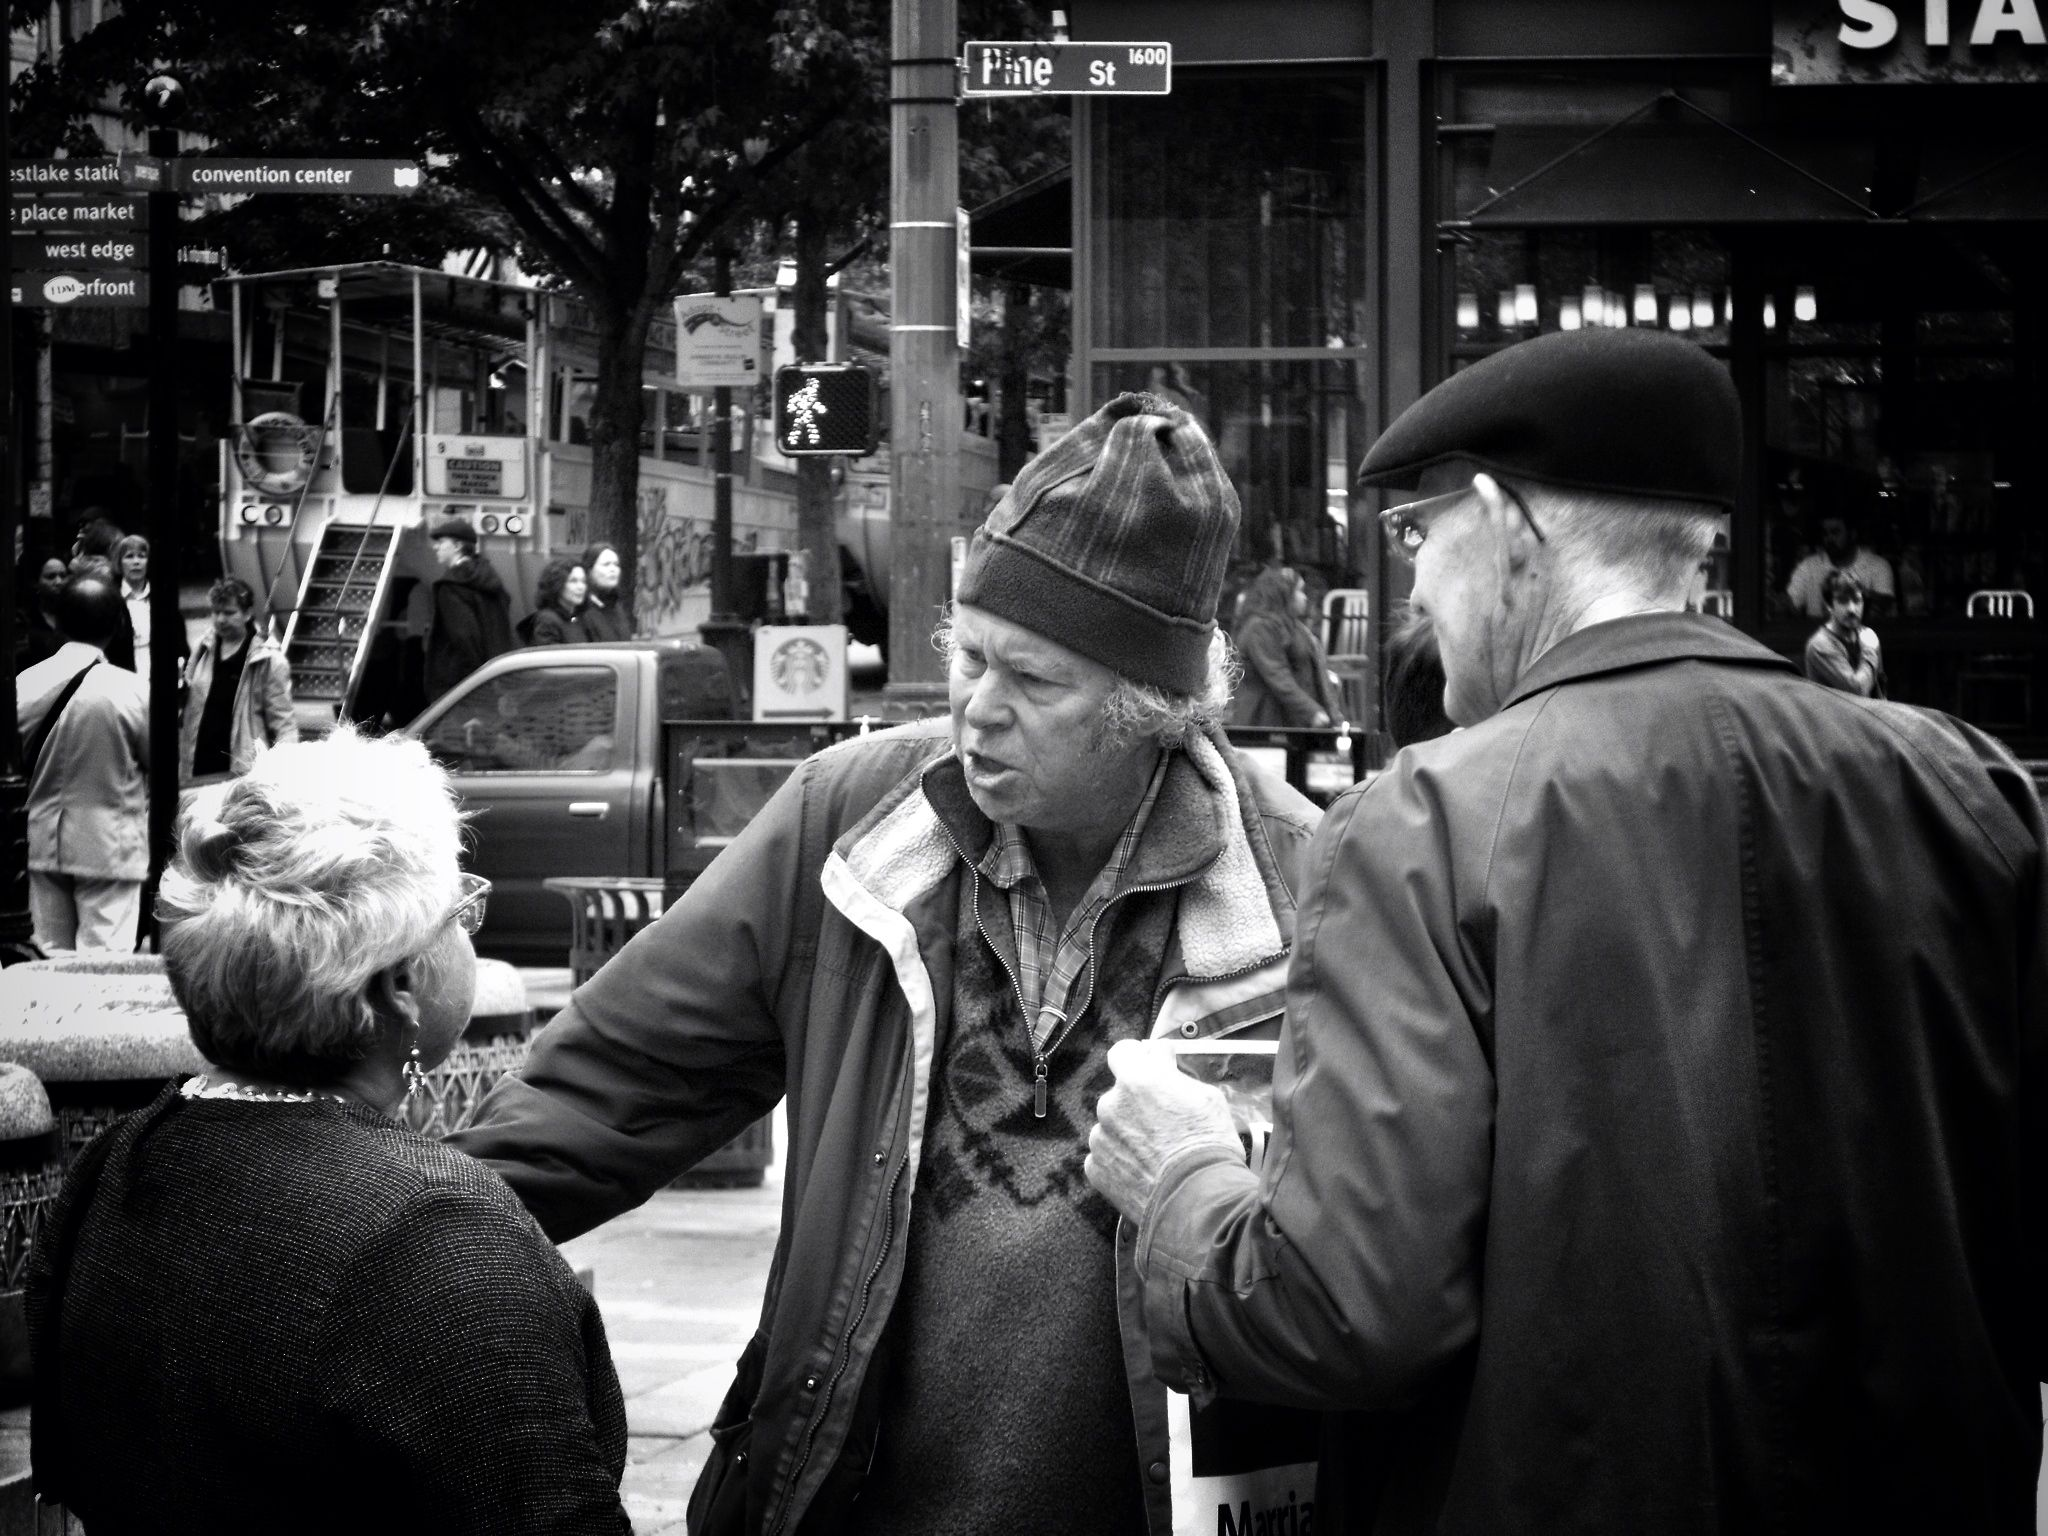 Arguing about Gay marriage at Westlake in Seattle. The woman in the glasses was pro Equality and the two men were not.